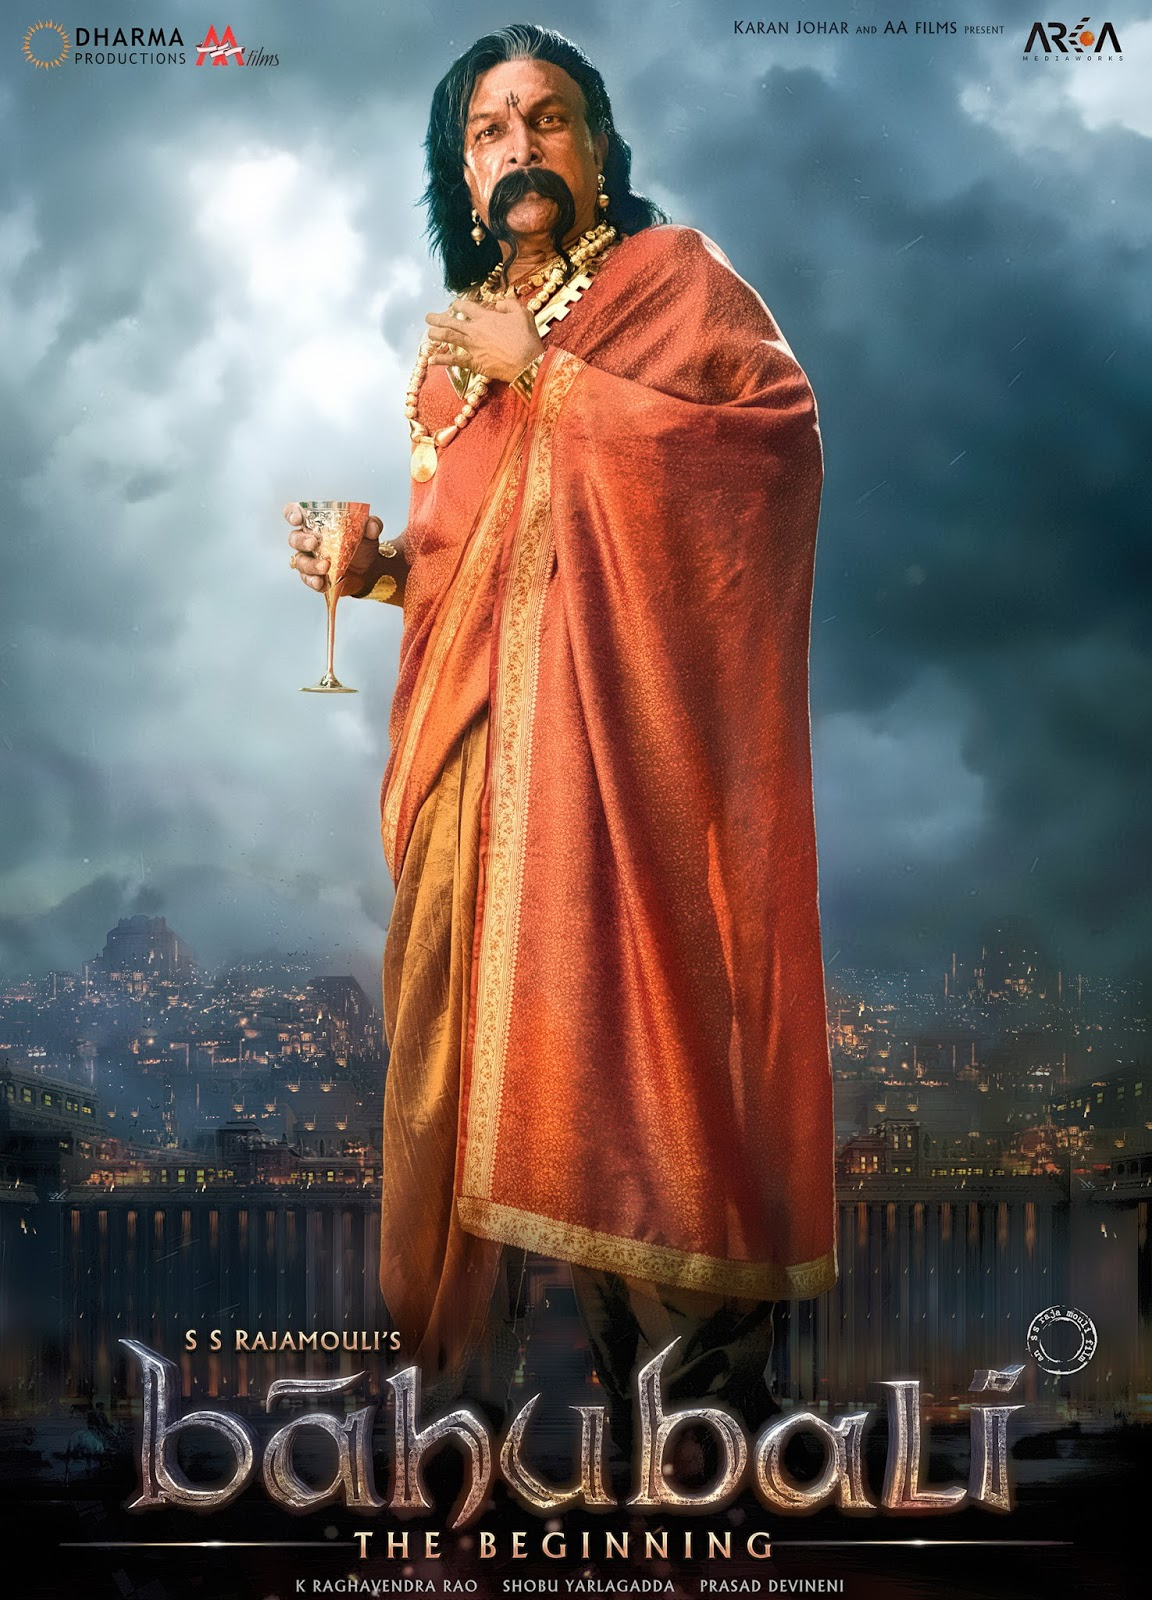 Wallpaper download bahubali 2 - Bahubali Hd Wallpapers Bahubali Tollywood Movie Wallpapers Free Download